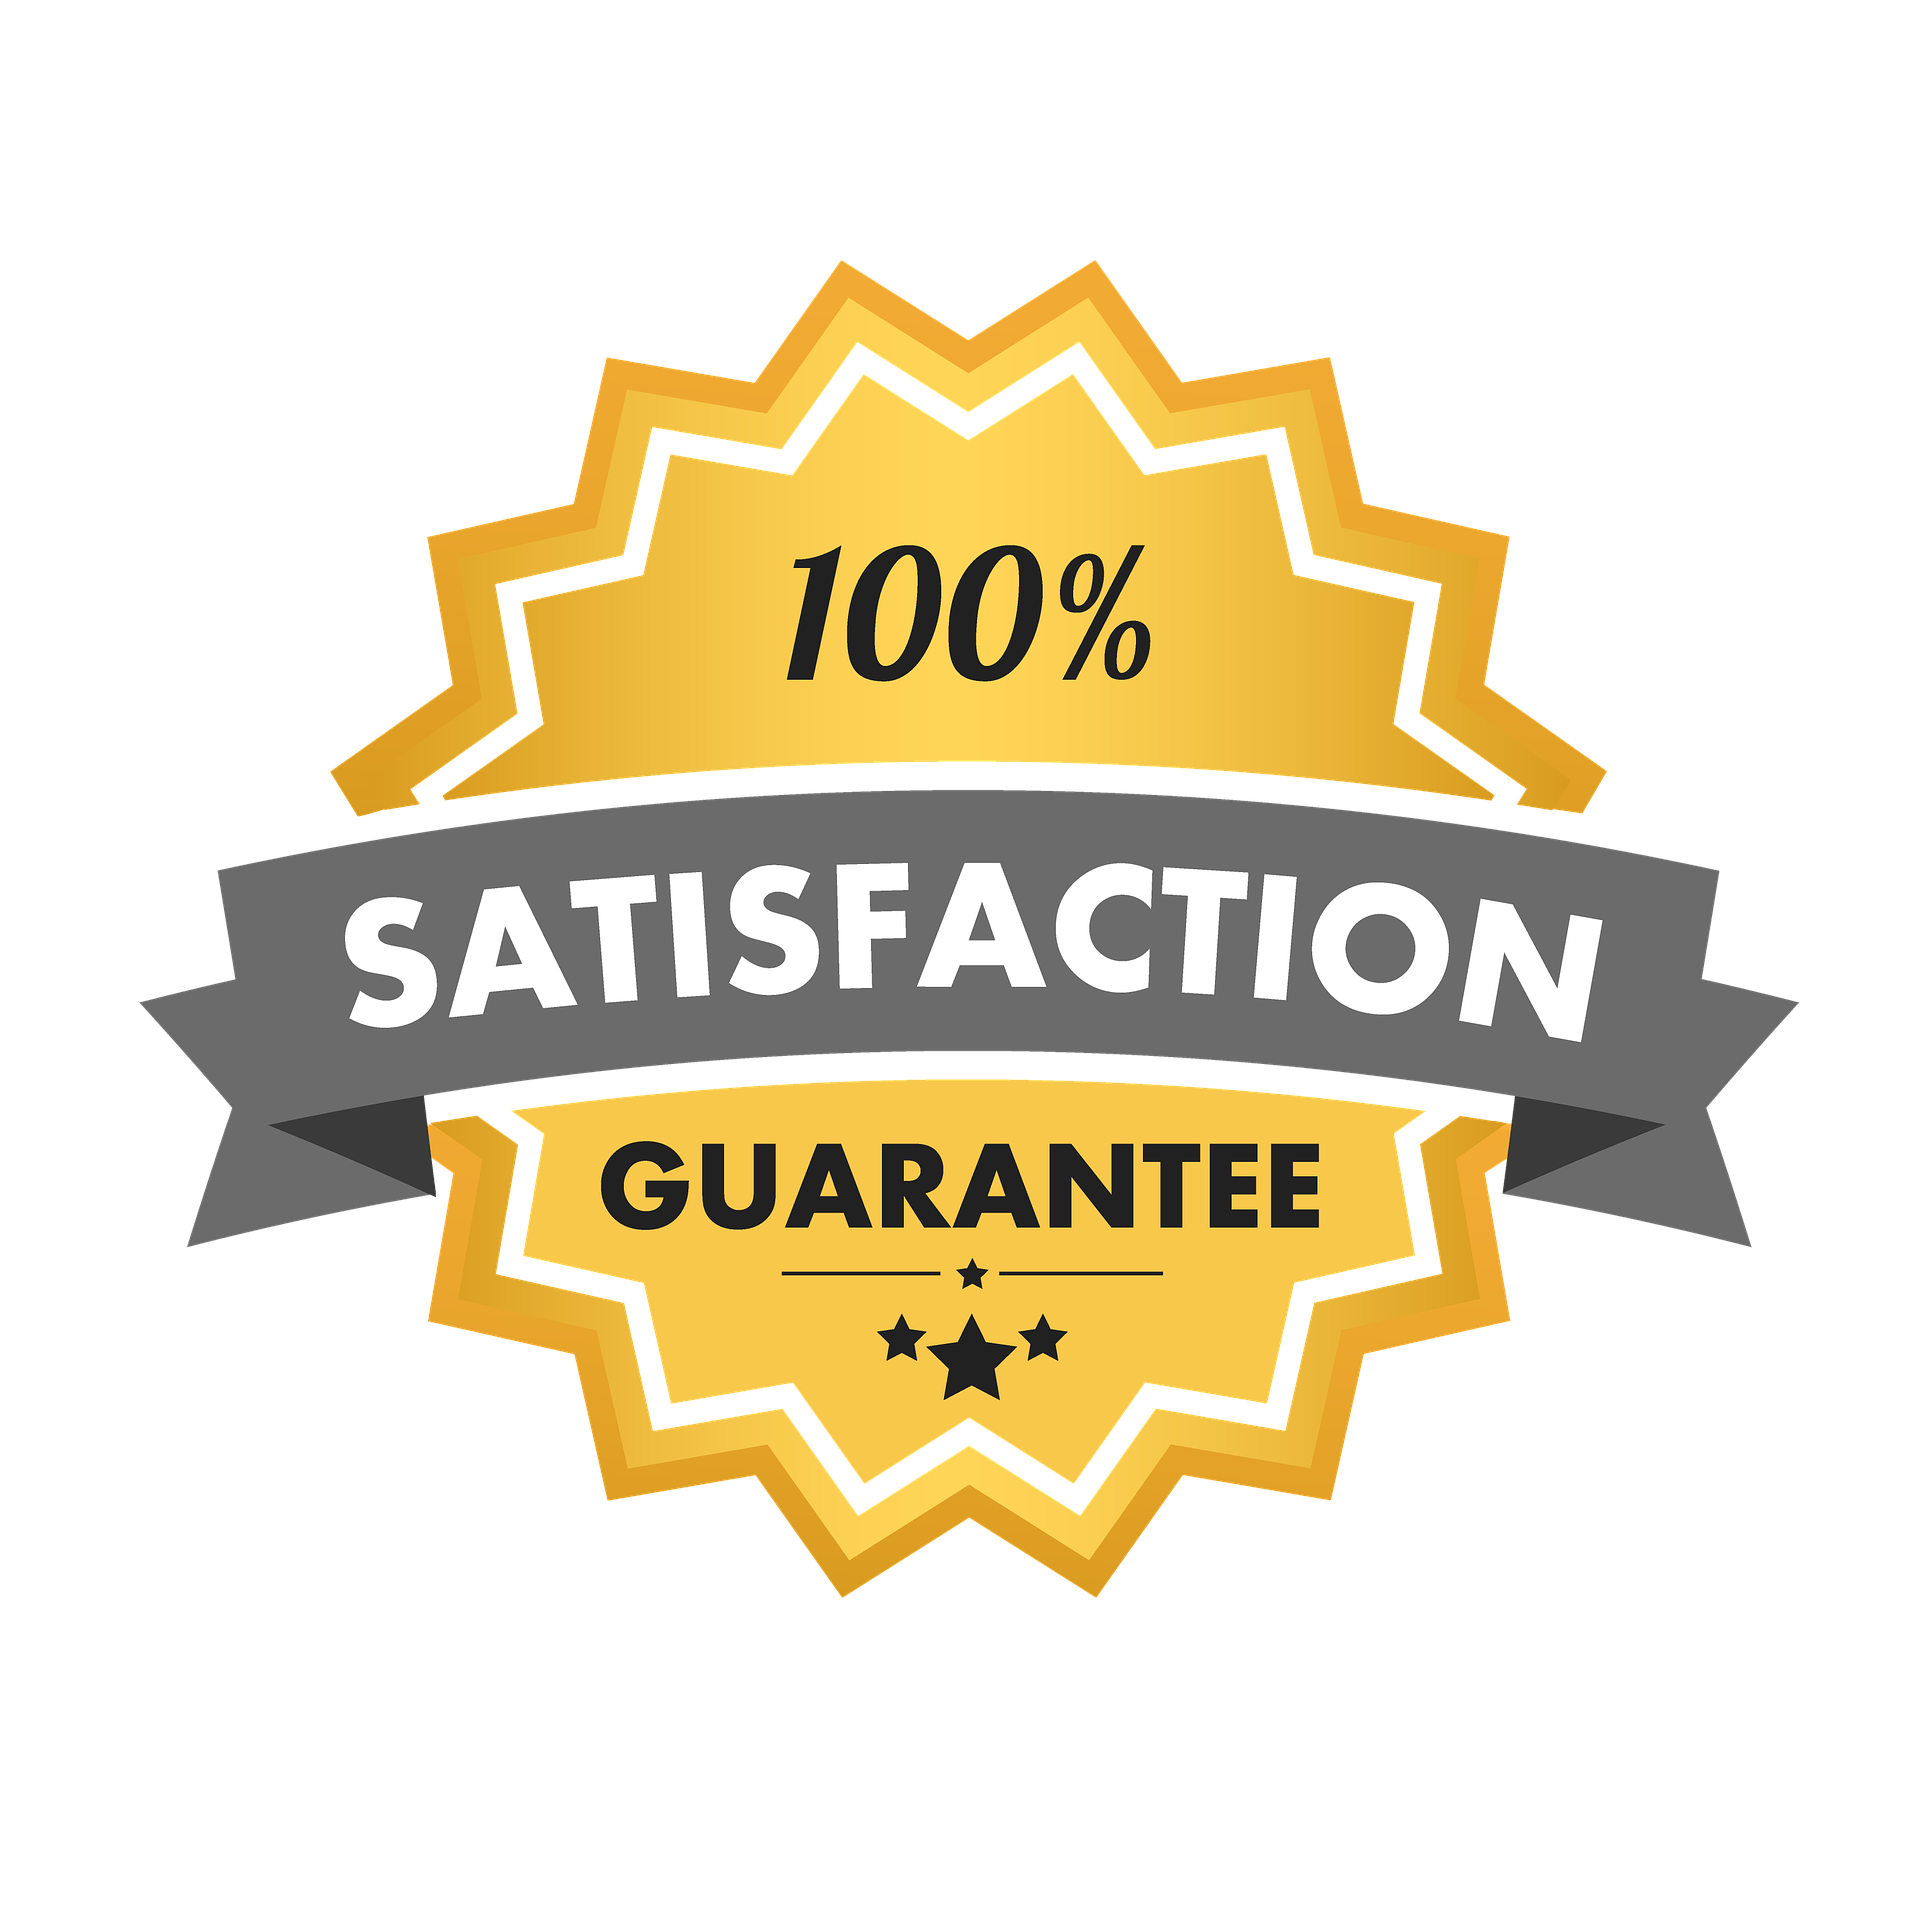 satisfaction-guarantee-2109235_1920